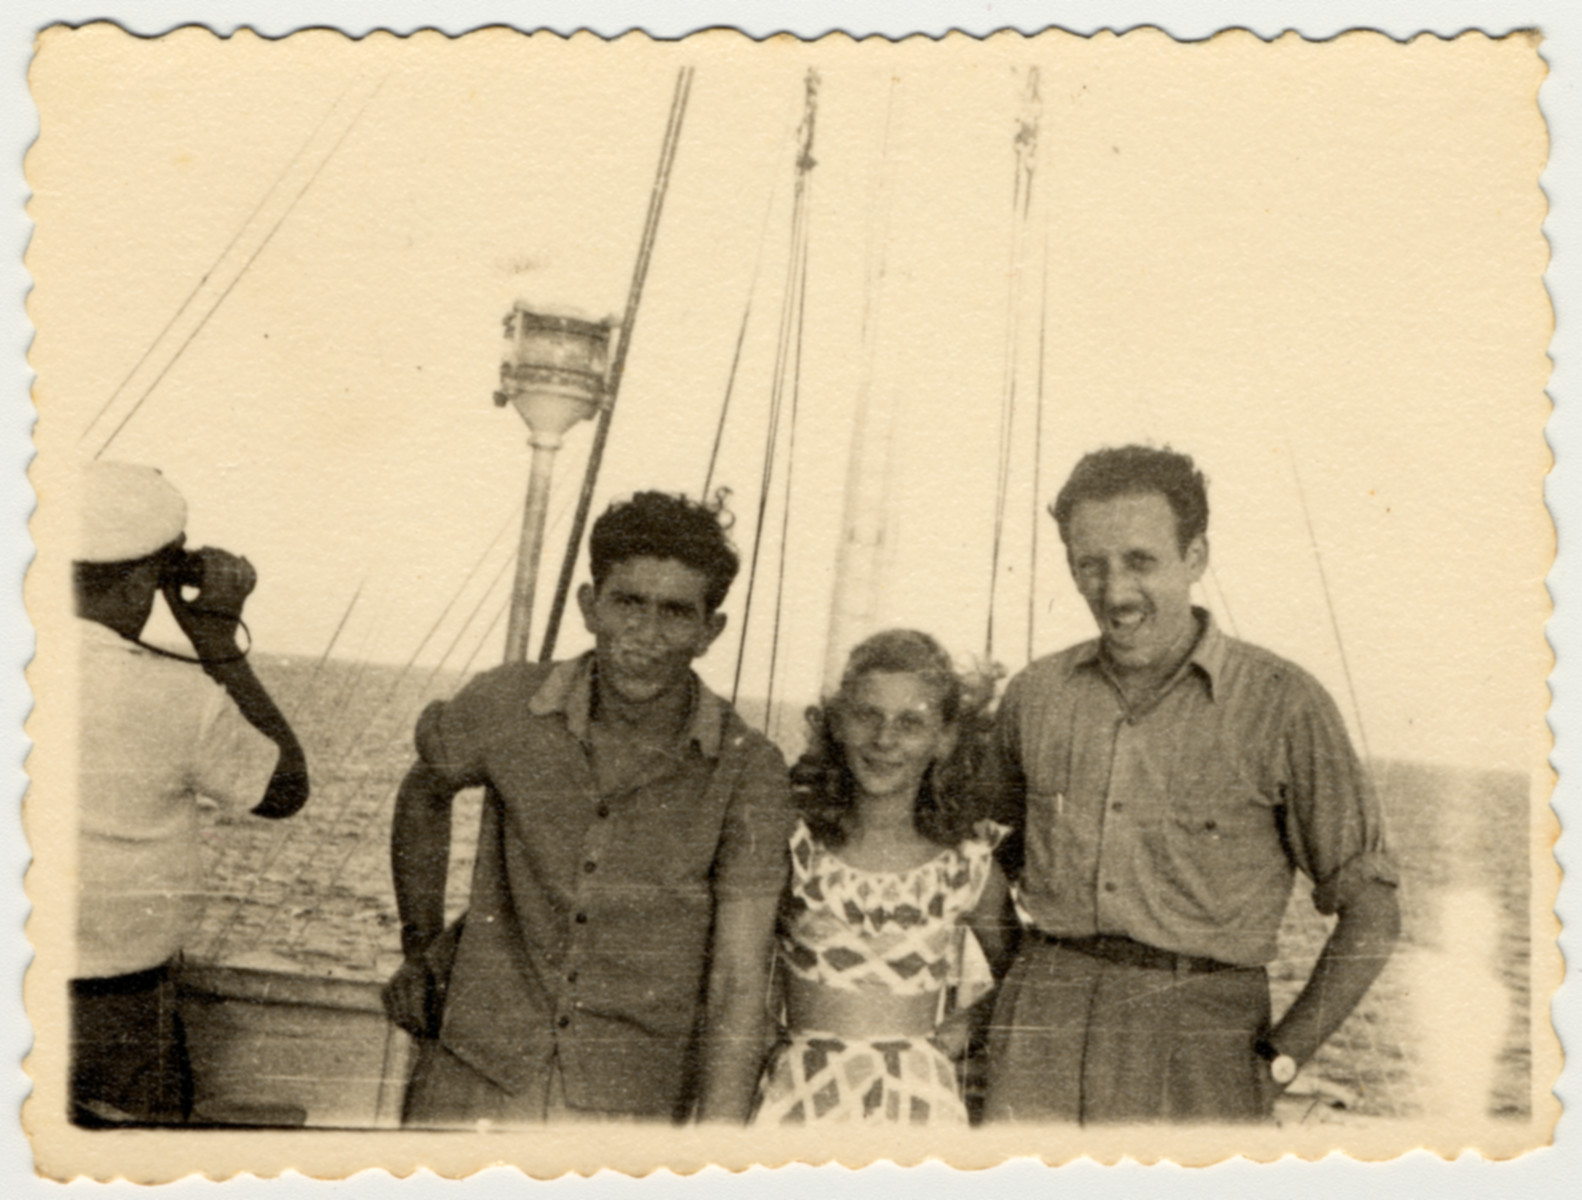 Two teenagers pose with crew member Teddy Vardi on the bridge of the SS Caserta.  Teddy Vardi had helped liberate Nordhausen as a soldier in the U.S. Army before joining the crew of the Exodus and later the Pan Crescent.